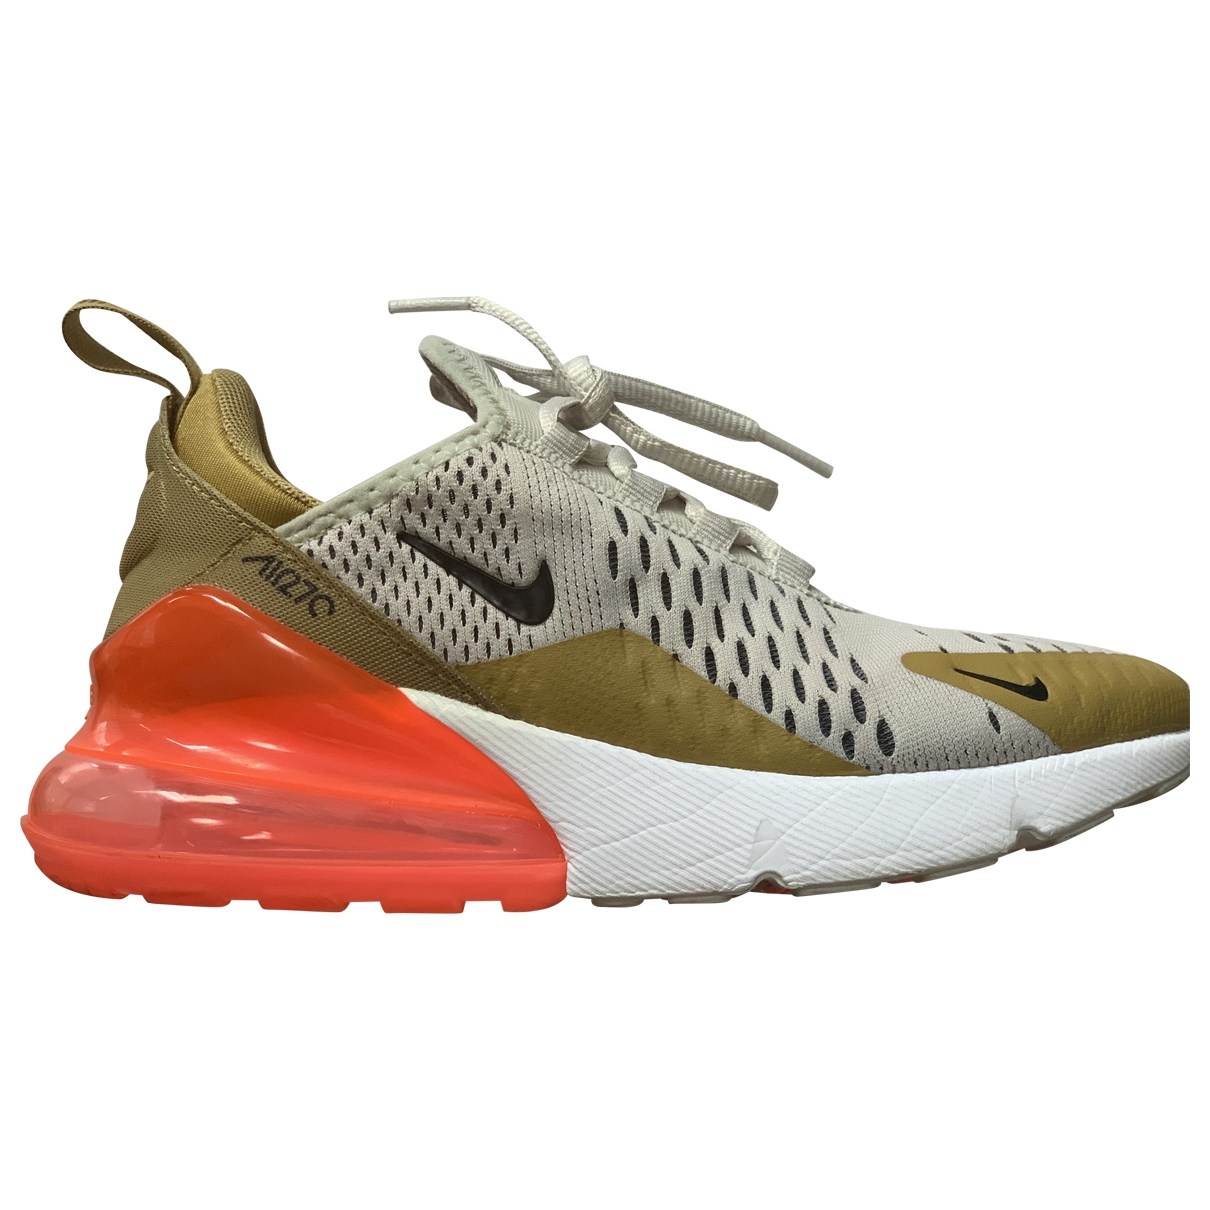 Nike Air Max 270  Gold Leather Trainers for Women 36 EU